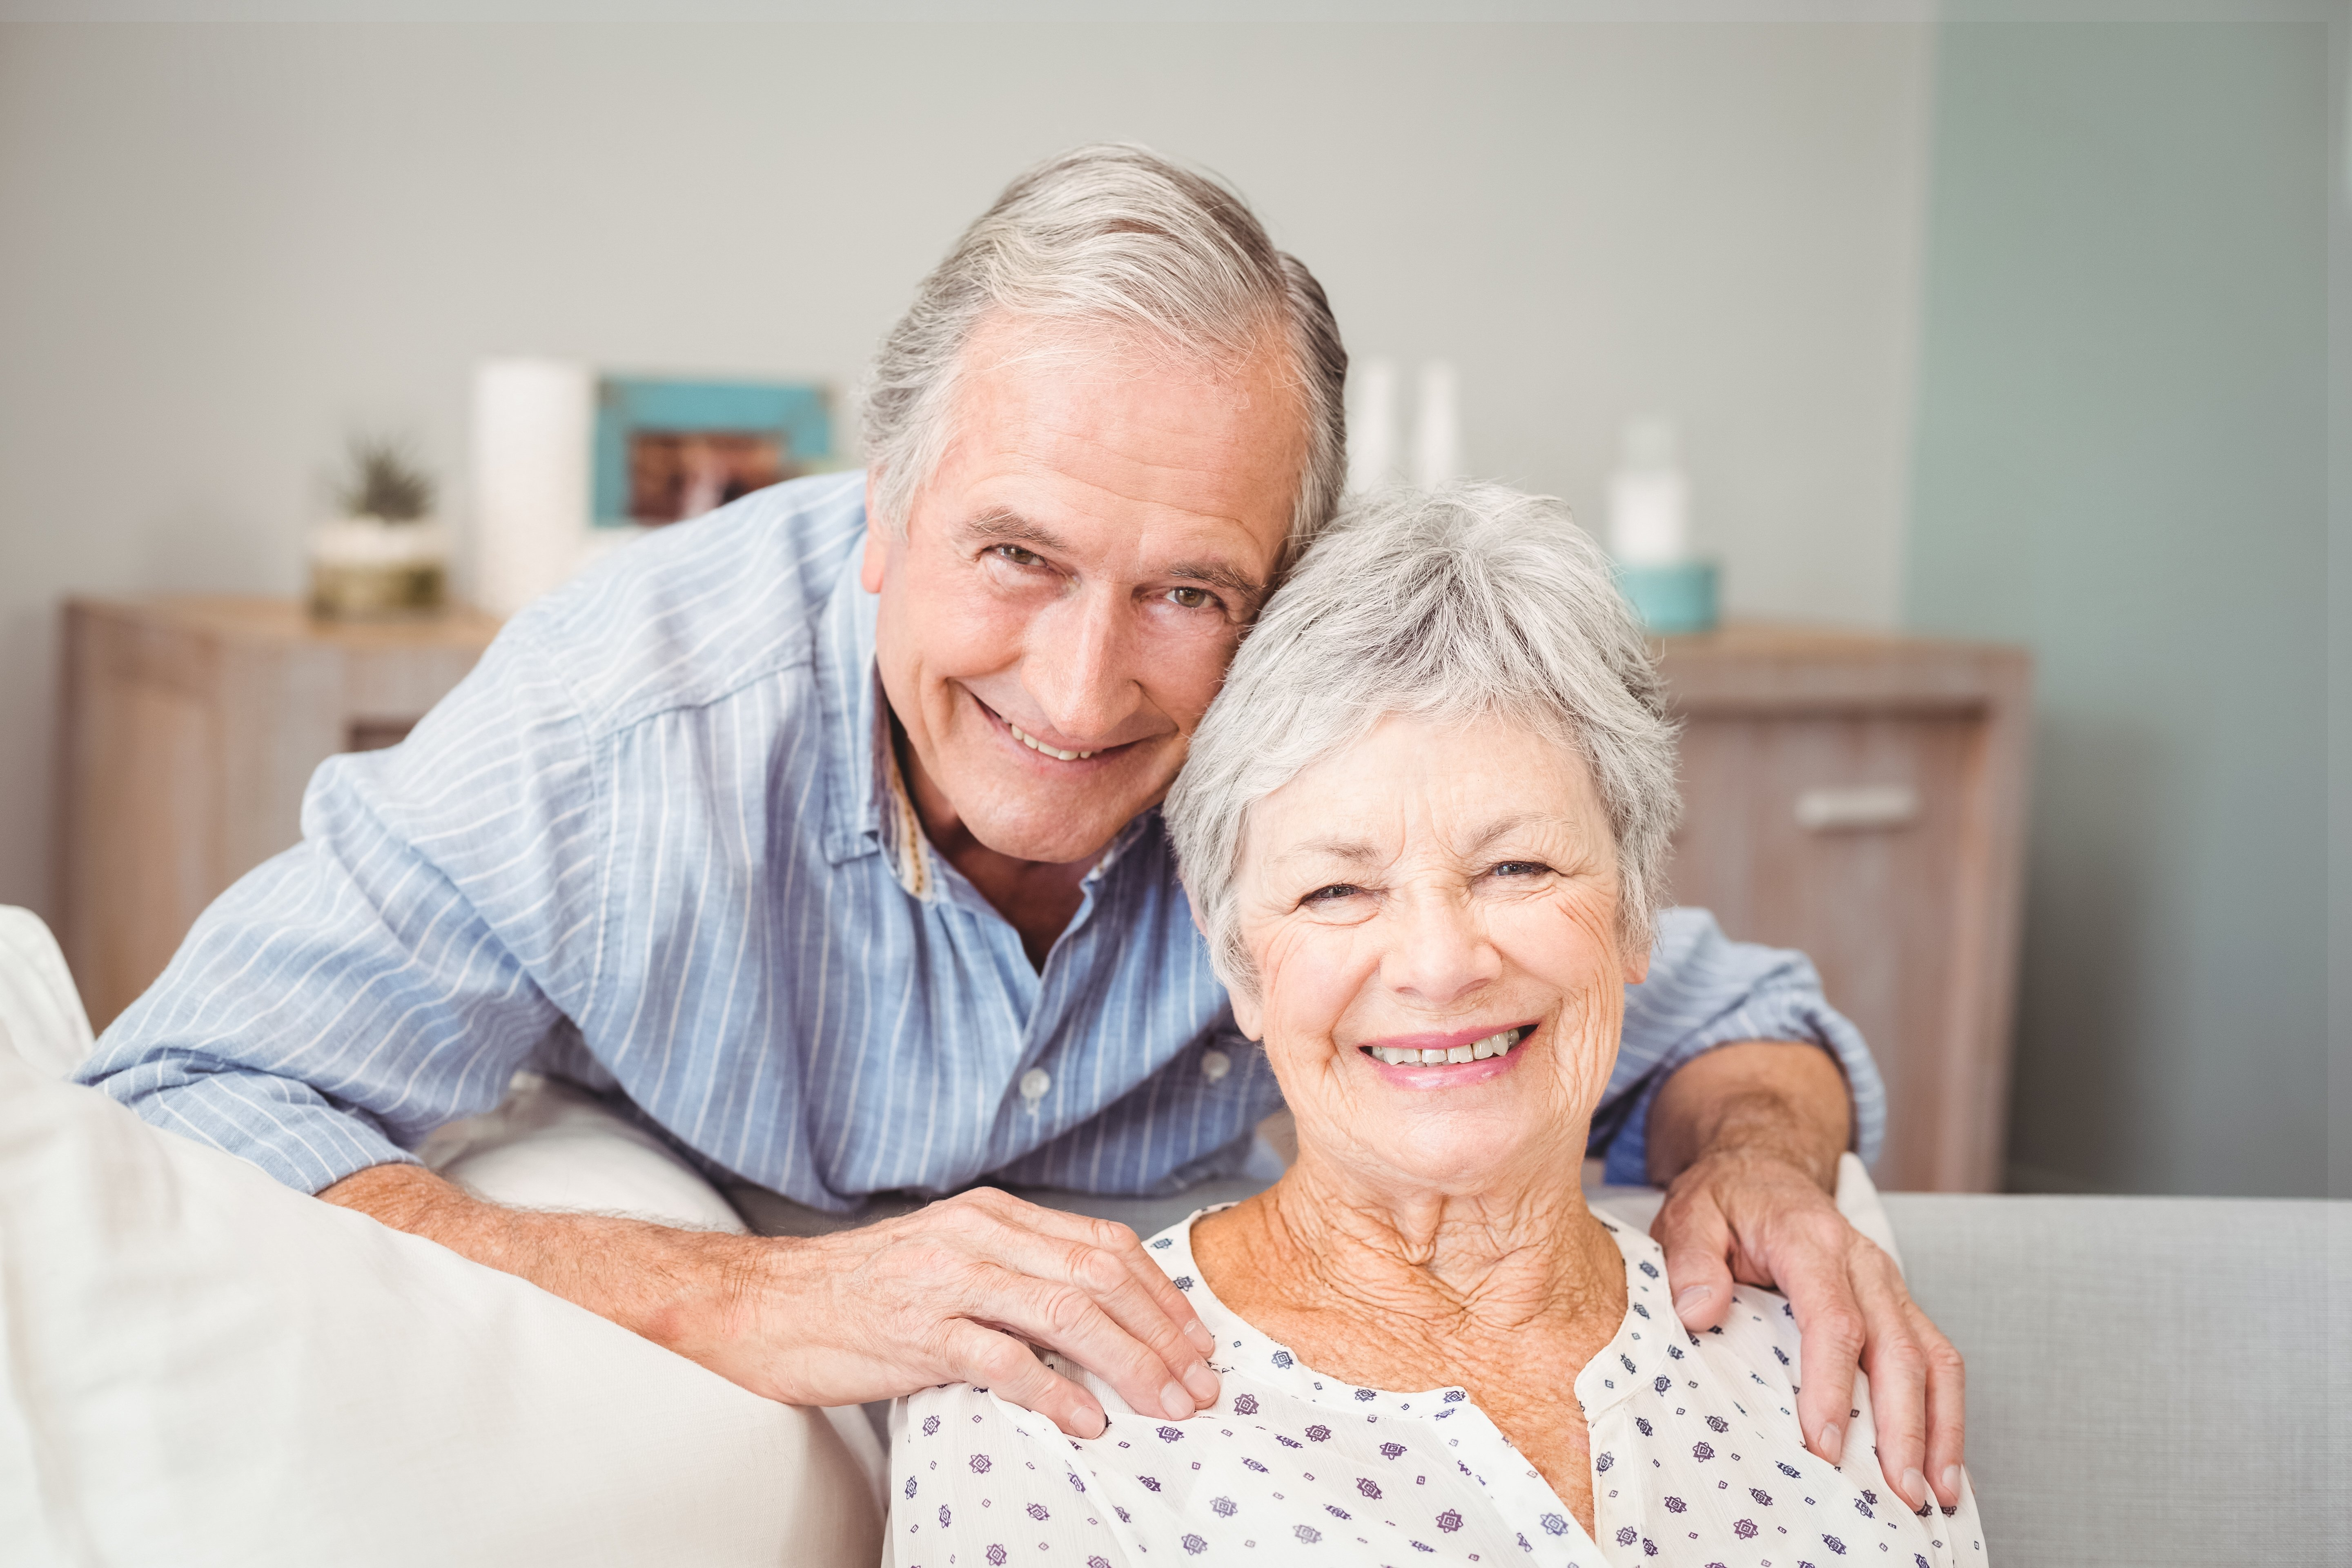 Portrait of romantic senior man with his wife at home | Photo: Shutterstock